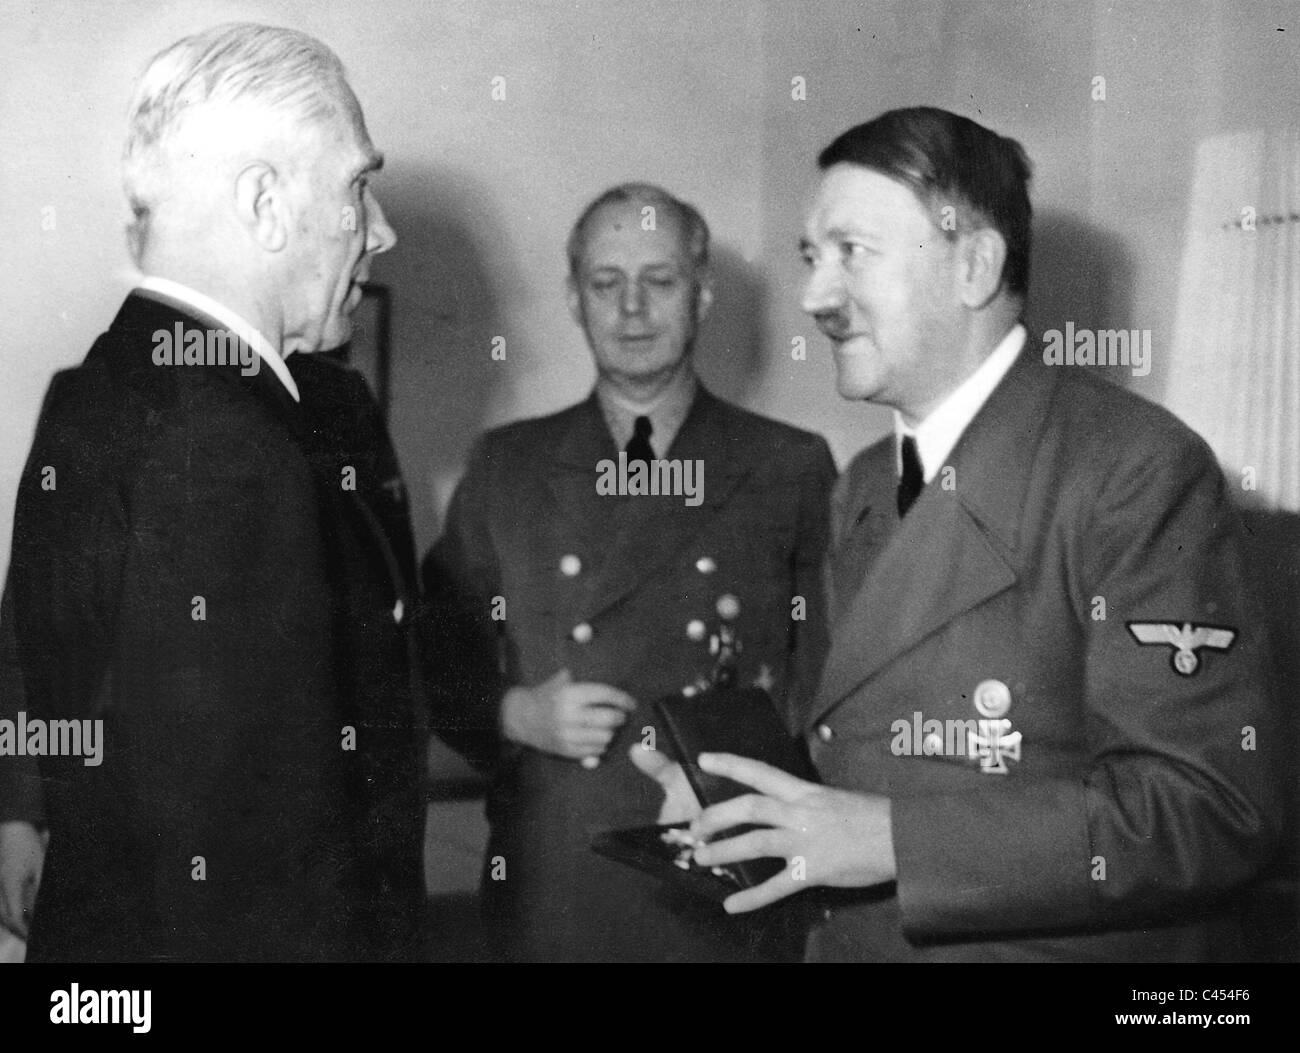 albert speer and his relationship with hitler